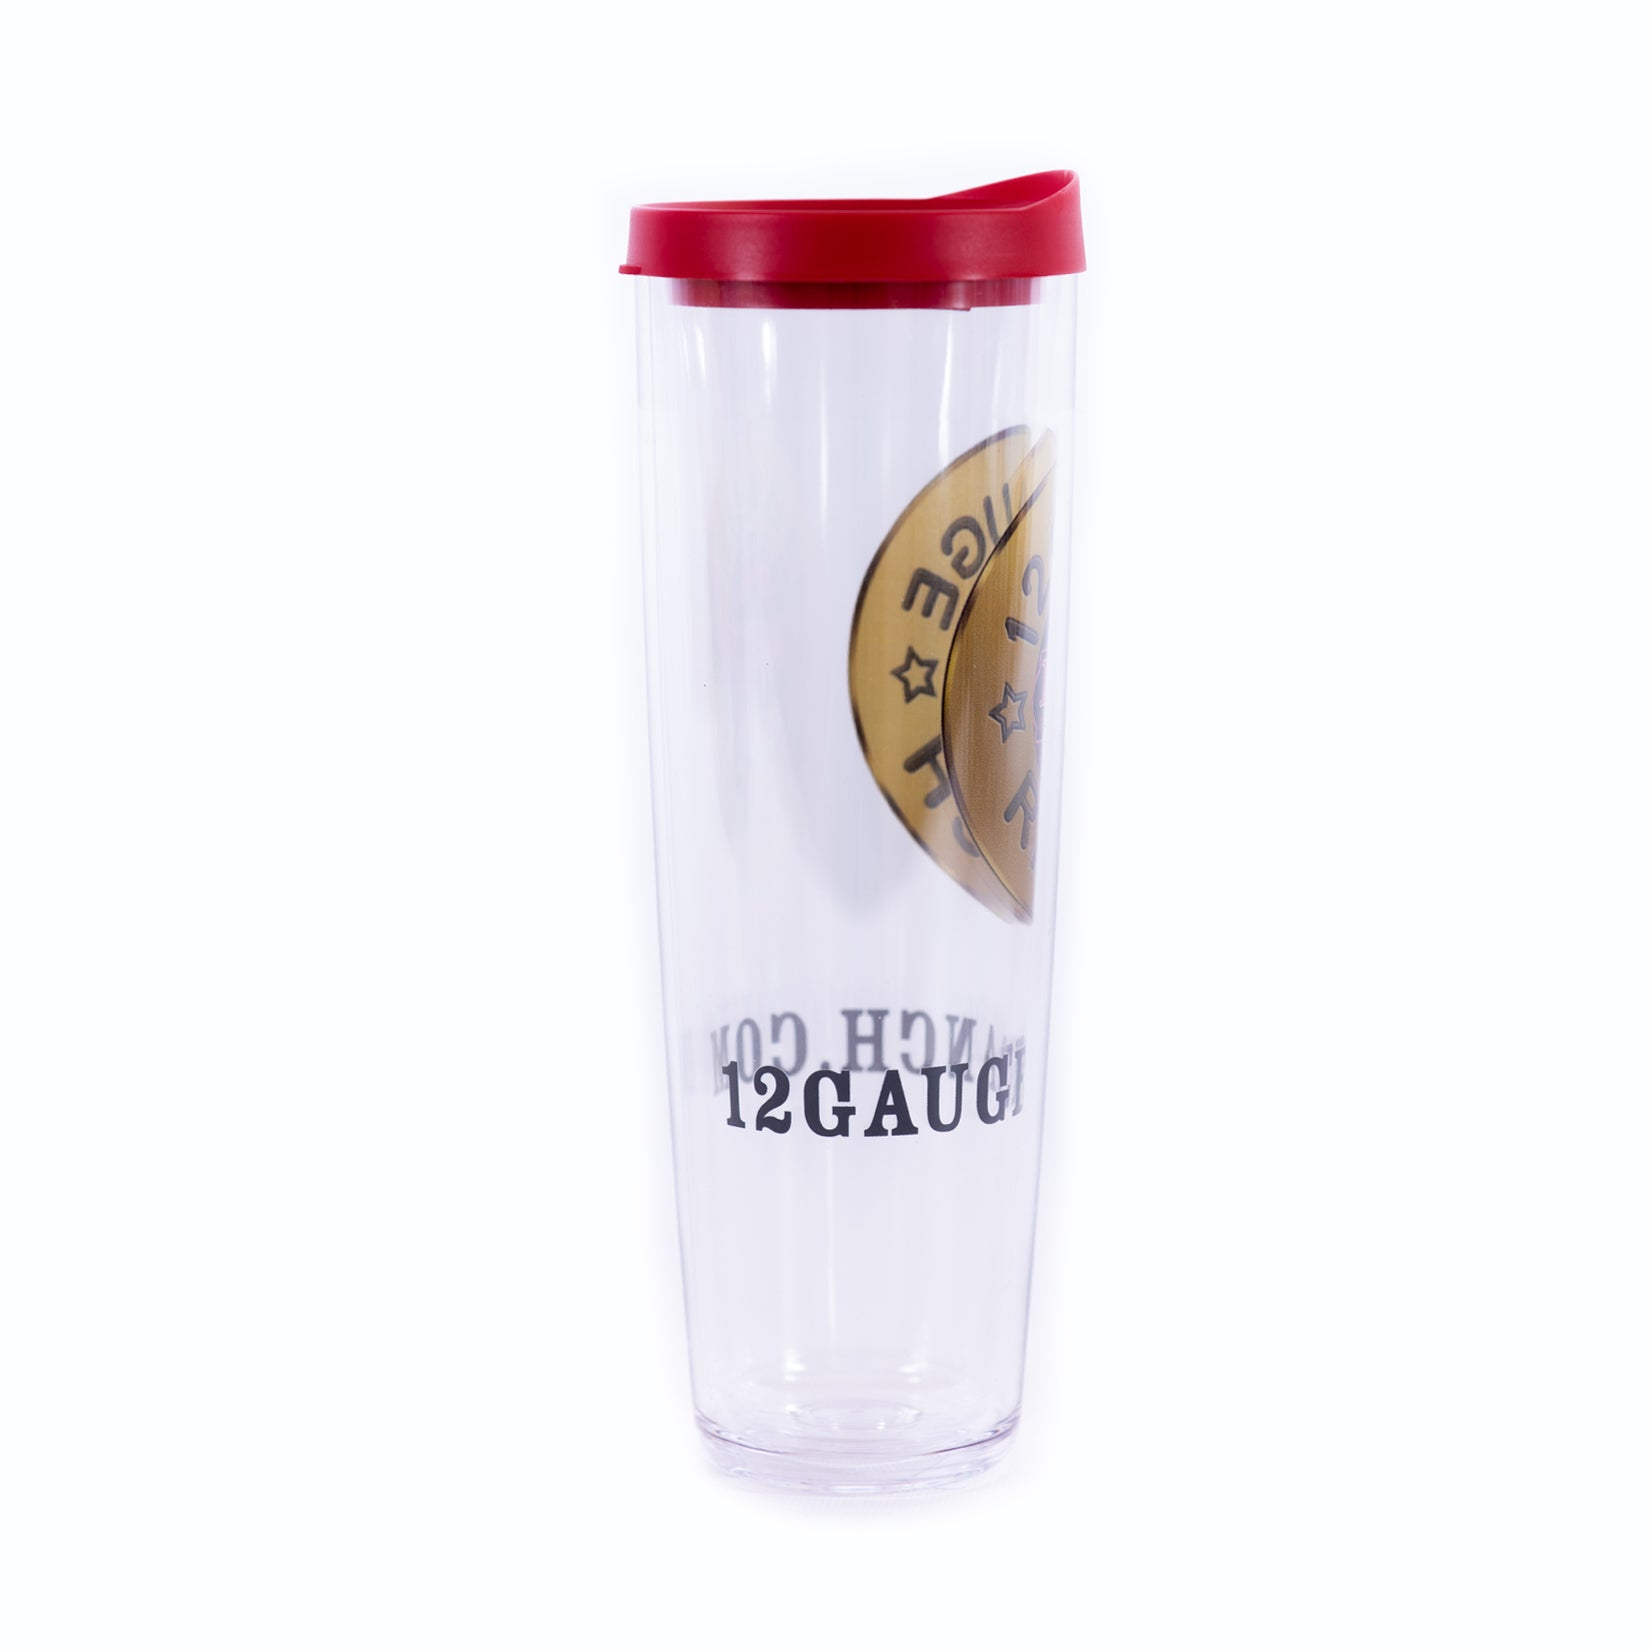 12 Gauge Ranch Elite 24oz Insulated Covo Cup, Accessories, 12 Gauge Ranch, 12 Gauge Ranch 12 Gauge Ranch